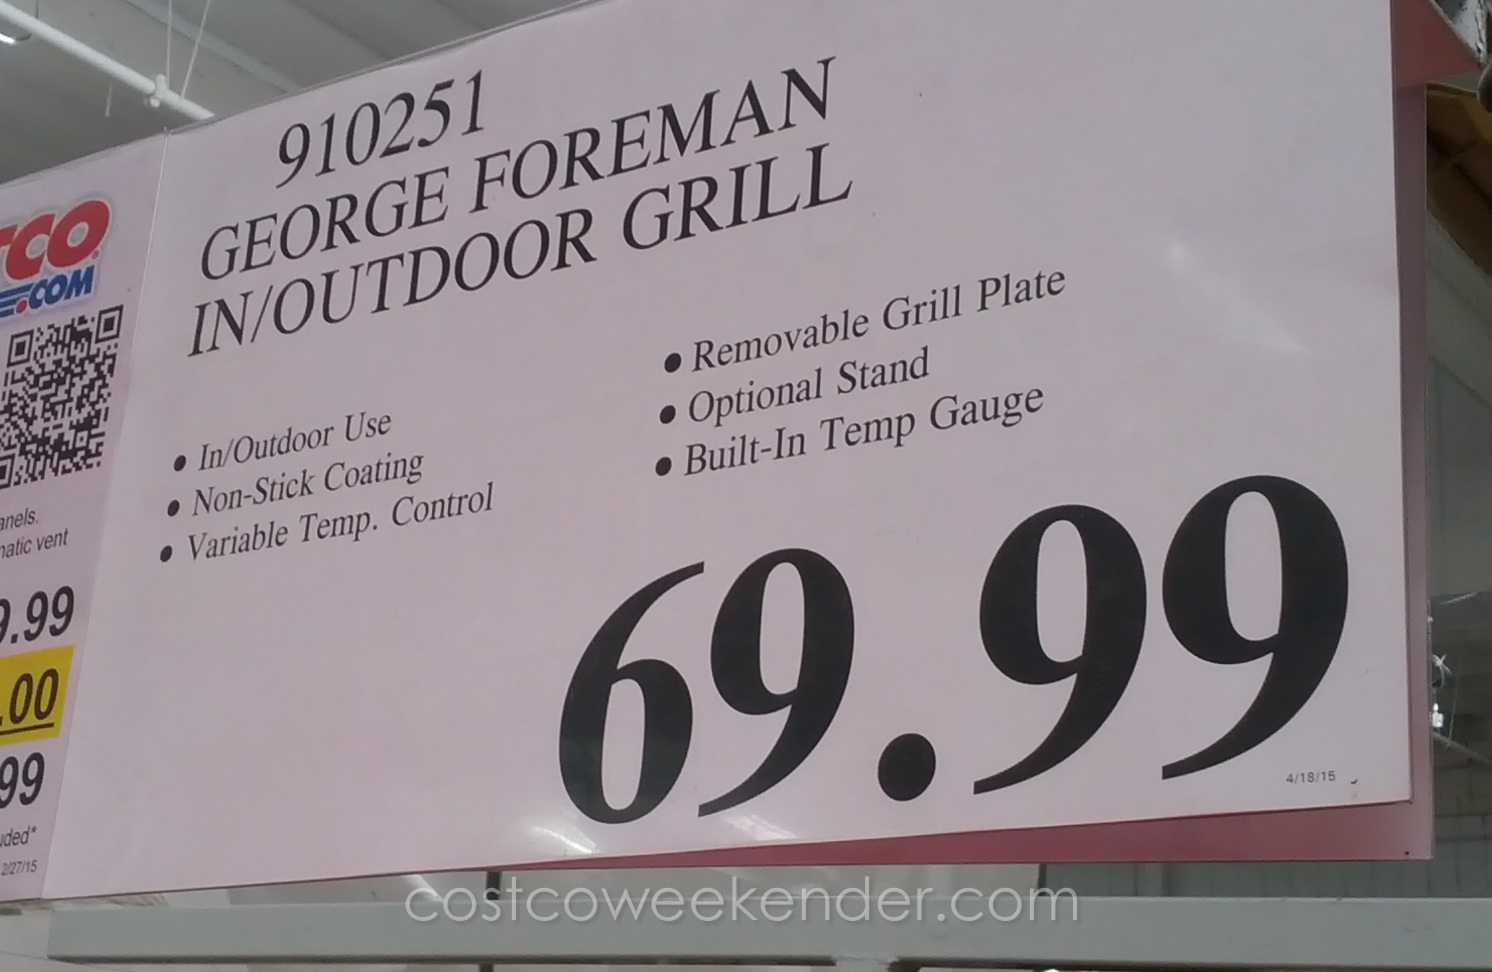 Deal For The George Foreman Indoor/Outdoor Electric Grill At Costco